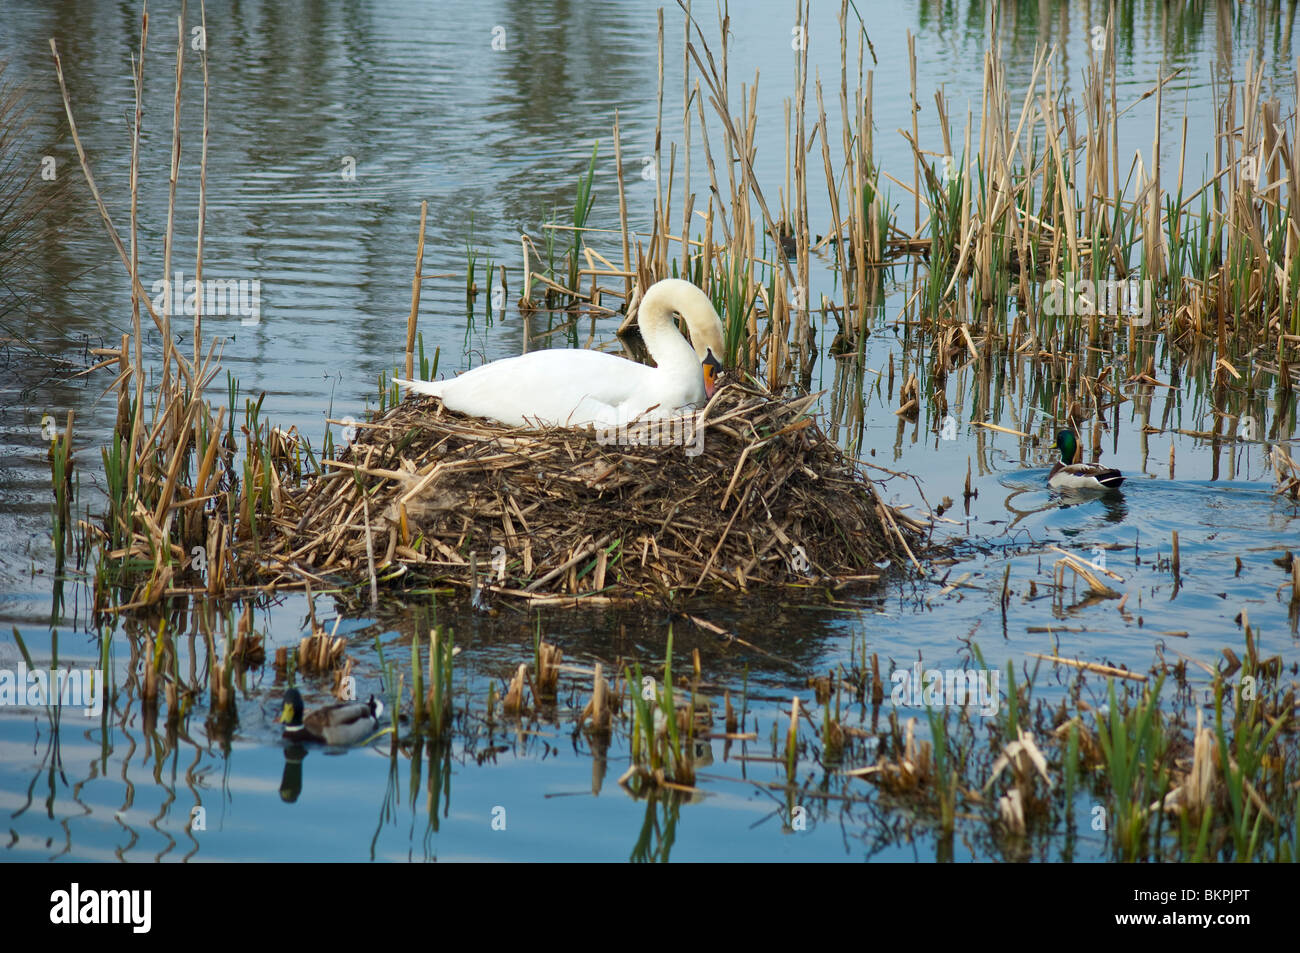 A swan broods over her reed island nest in the mill pond at Skerries, County Dublin, Ireland - Stock Image